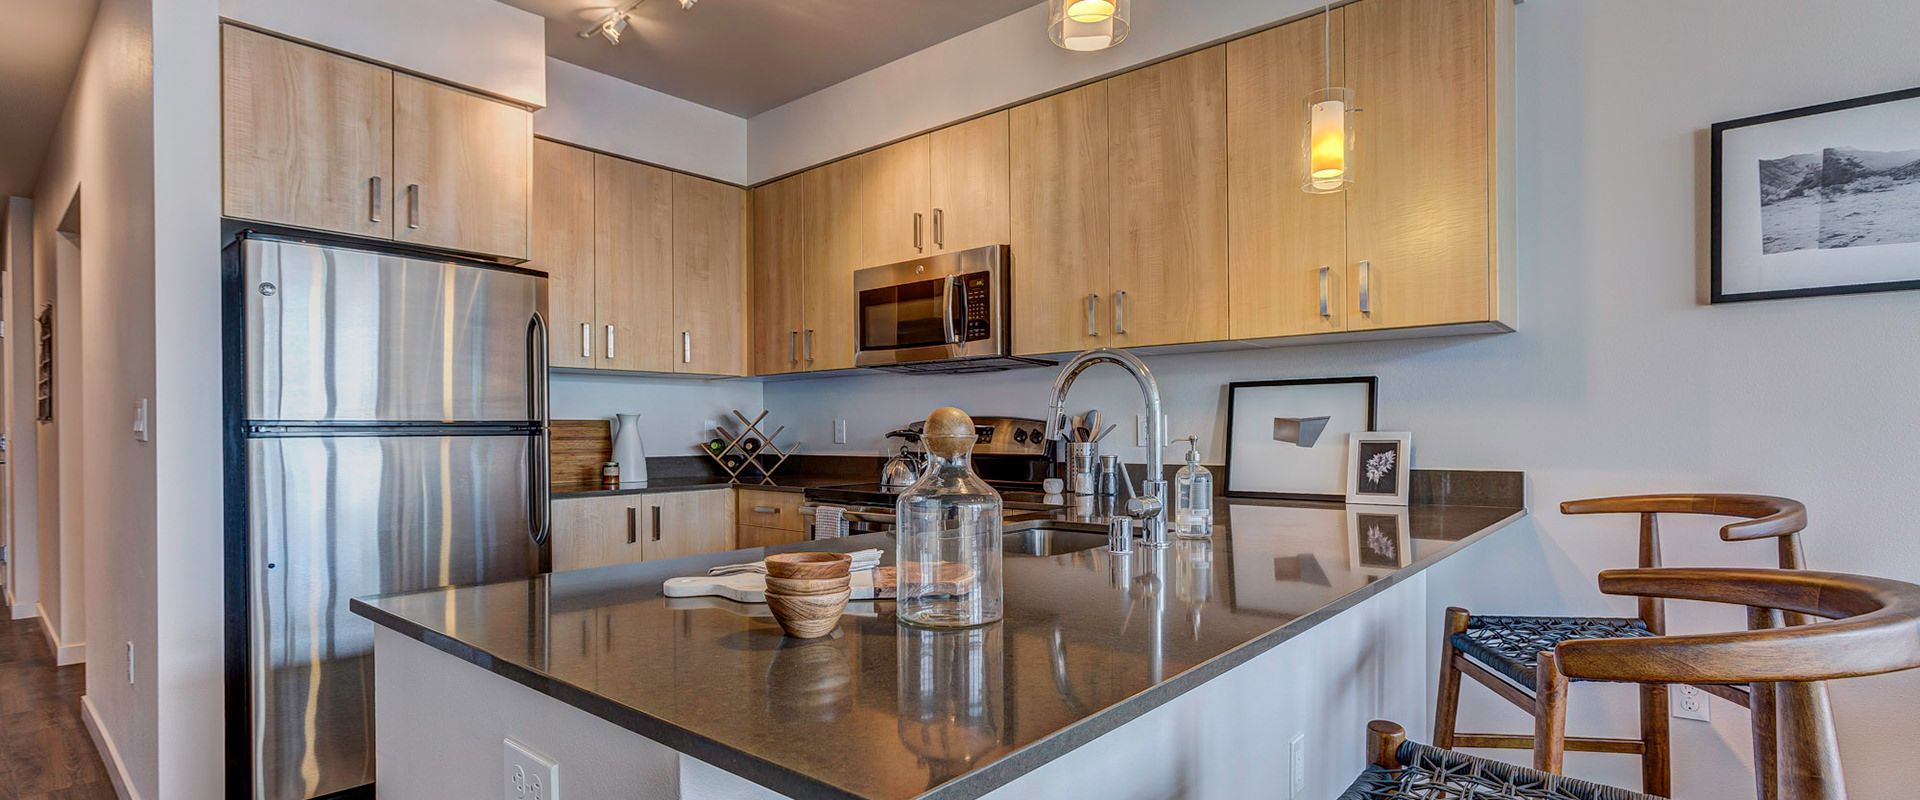 Studio Apartment Queen Anne Seattle floor plans and pricing for the kennedy building seattle wa